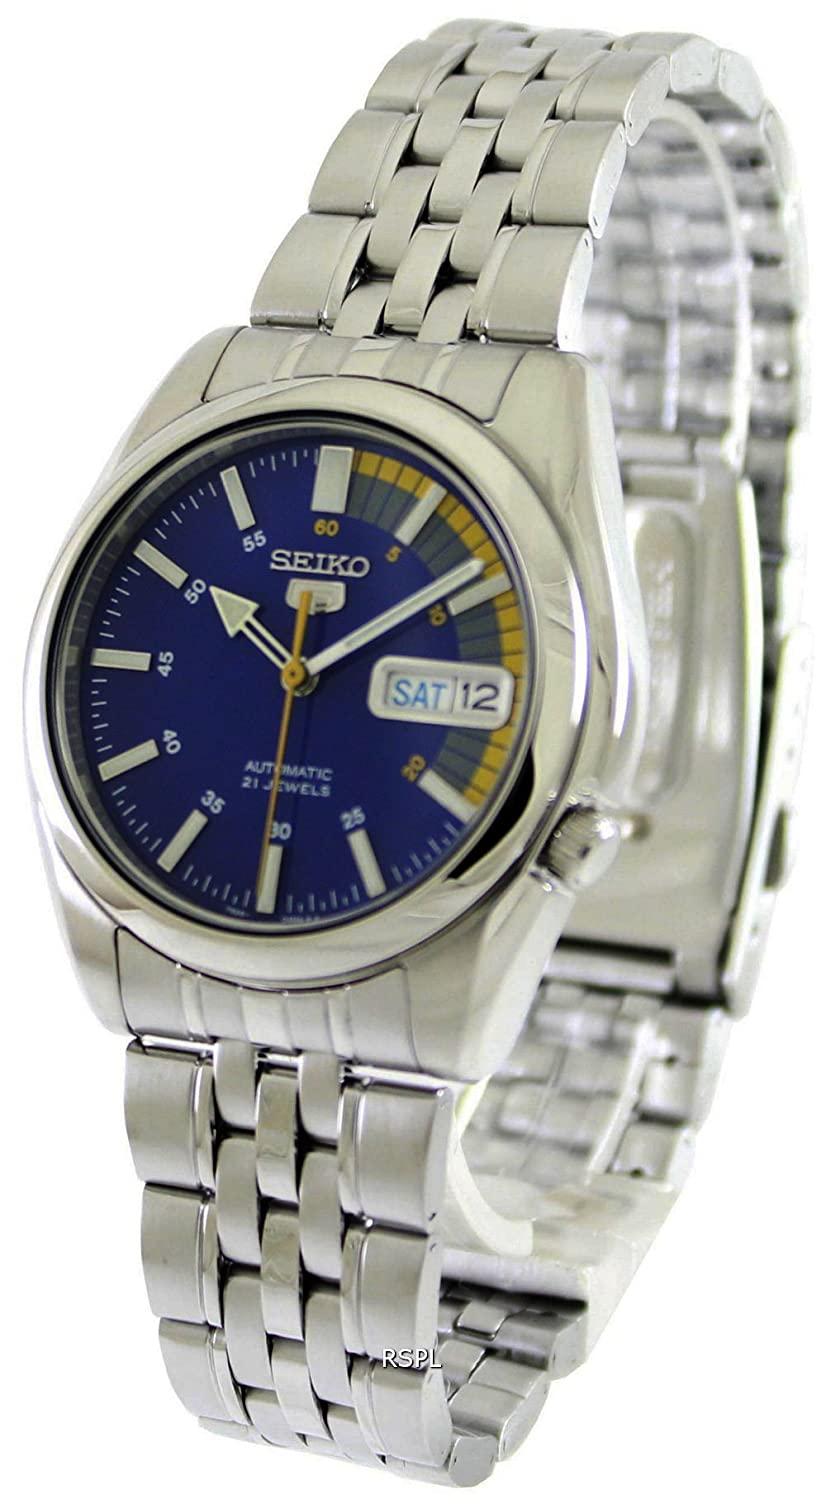 ee6a2cb4b6e Amazon.com  Seiko Men s SNK371K Seiko 5 Automatic Blue Dial Stainless Steel  Watch  Seiko  Watches